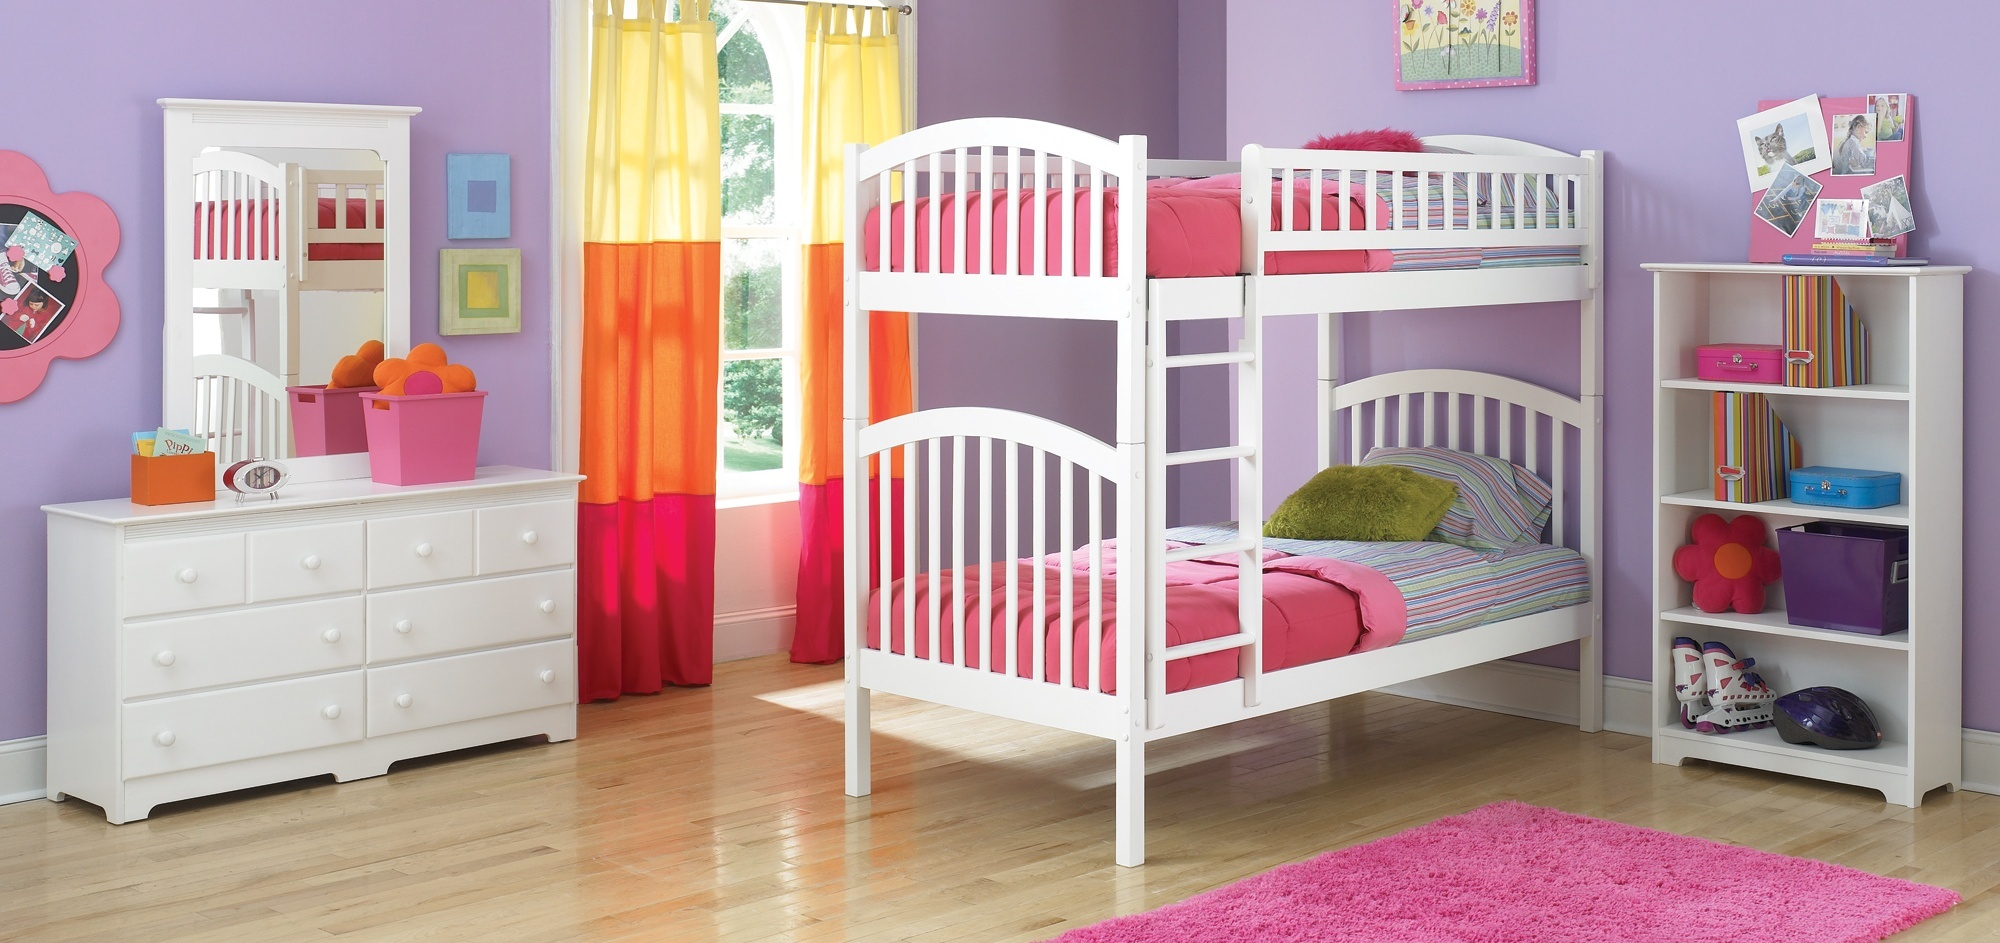 for Bunk bed girl bedroom ideas